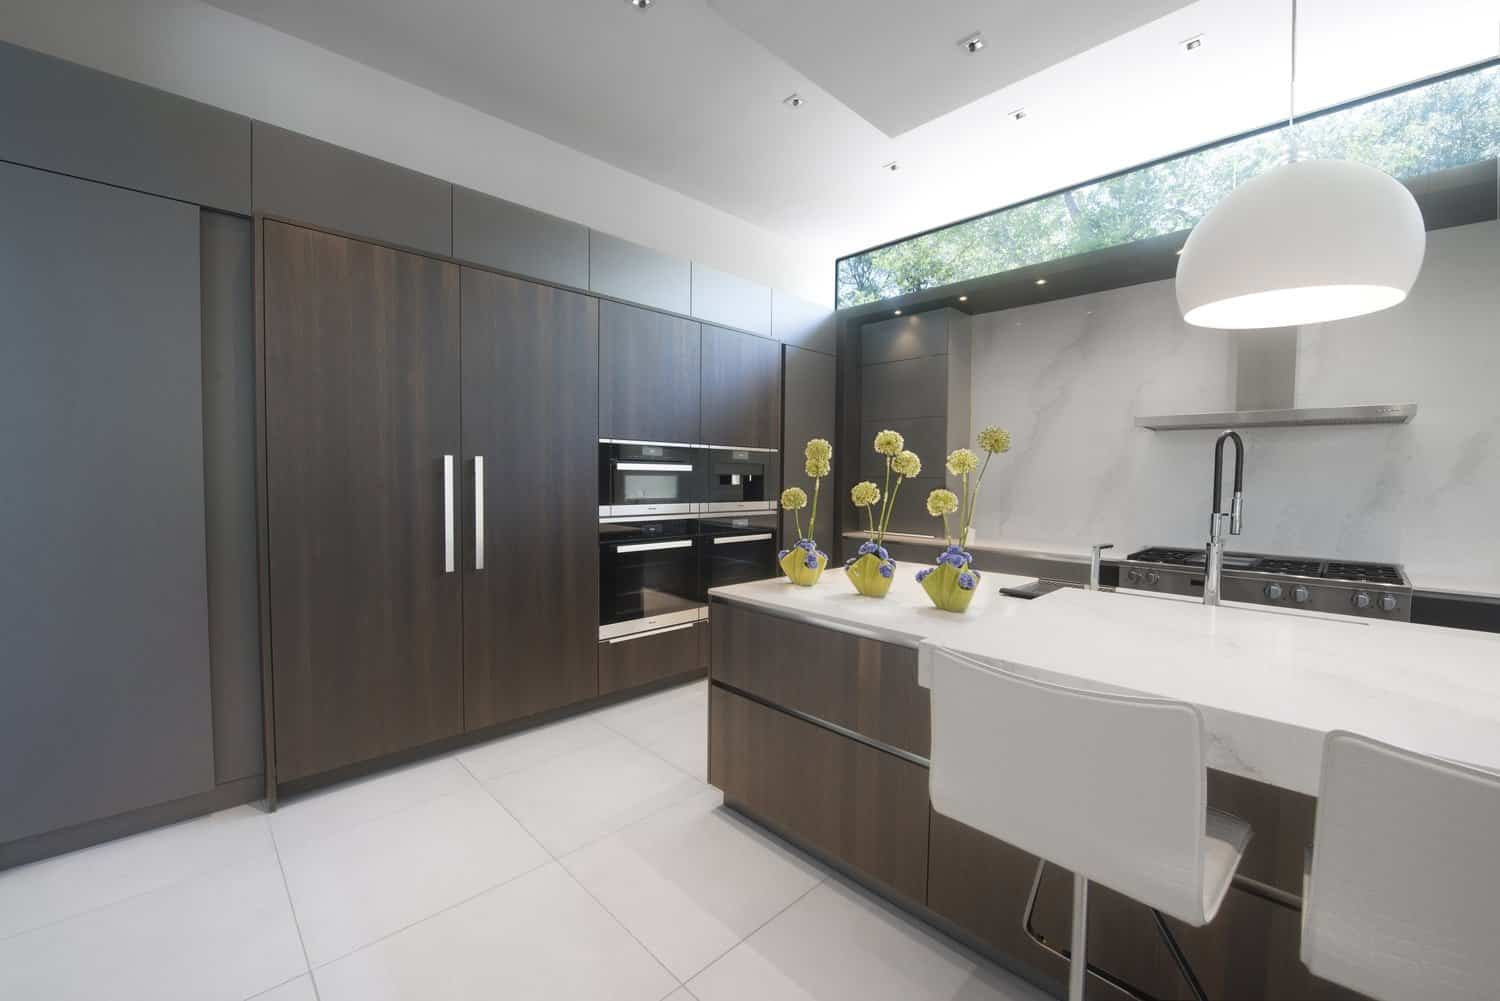 integrated subzero refrigerator and bank of miele appliances are convenient to the expansive countertop with breakfast bar